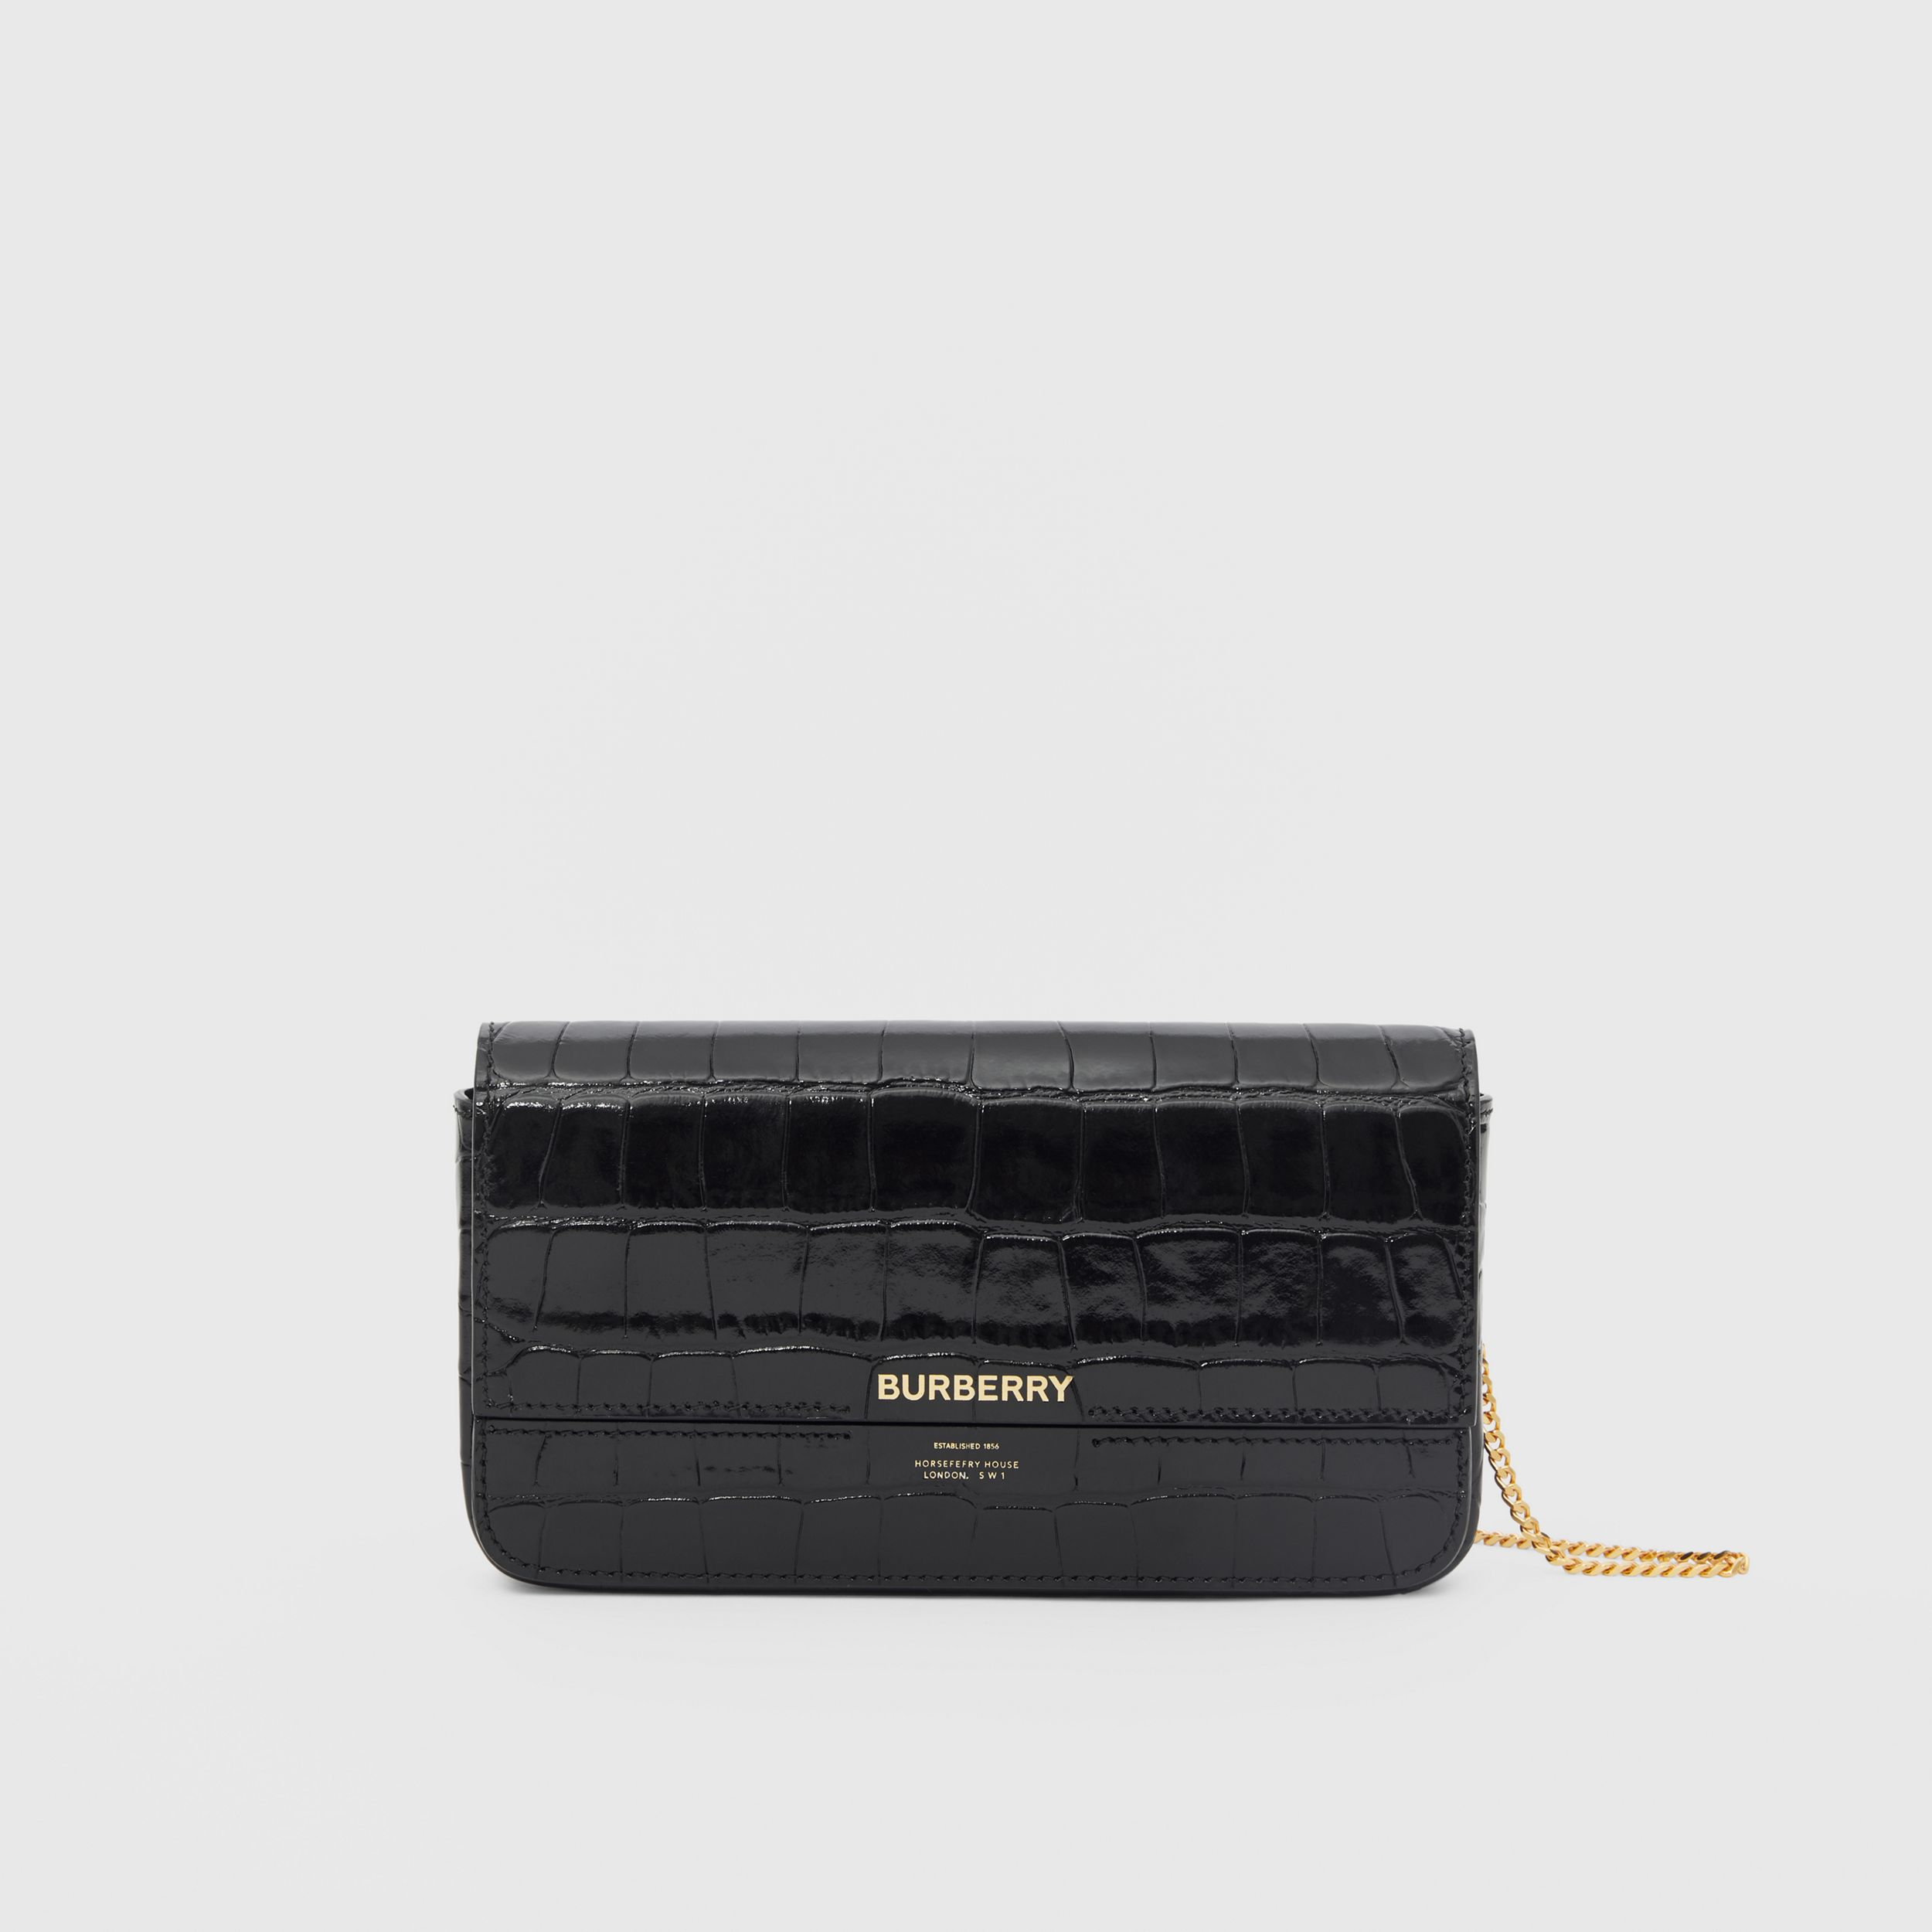 Embossed Leather Wallet with Detachable Chain Strap in Black - Women | Burberry Australia - 1